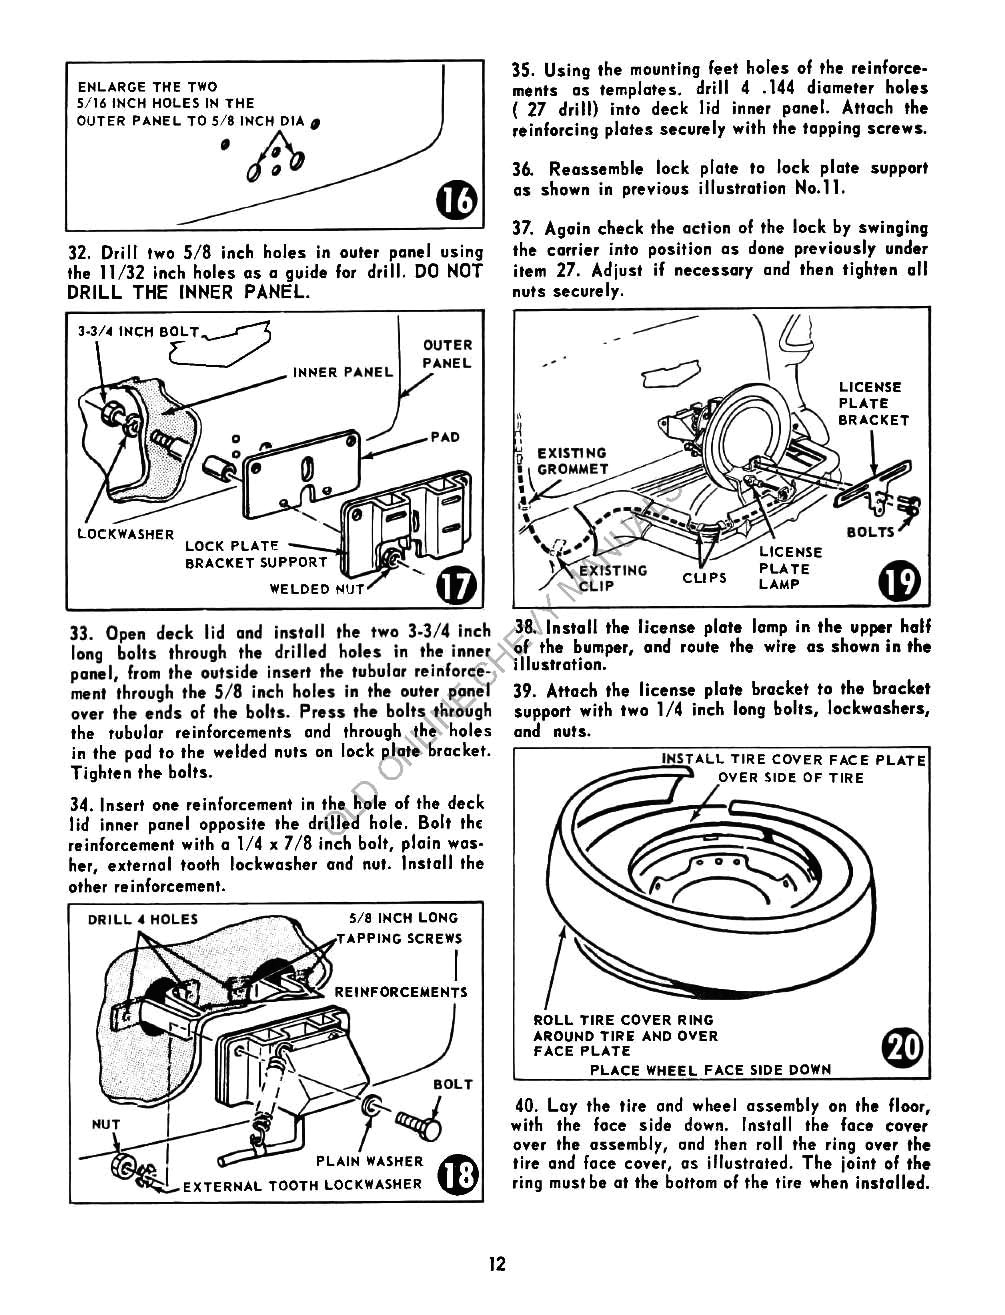 1955 Chevrolet Accessories Manual